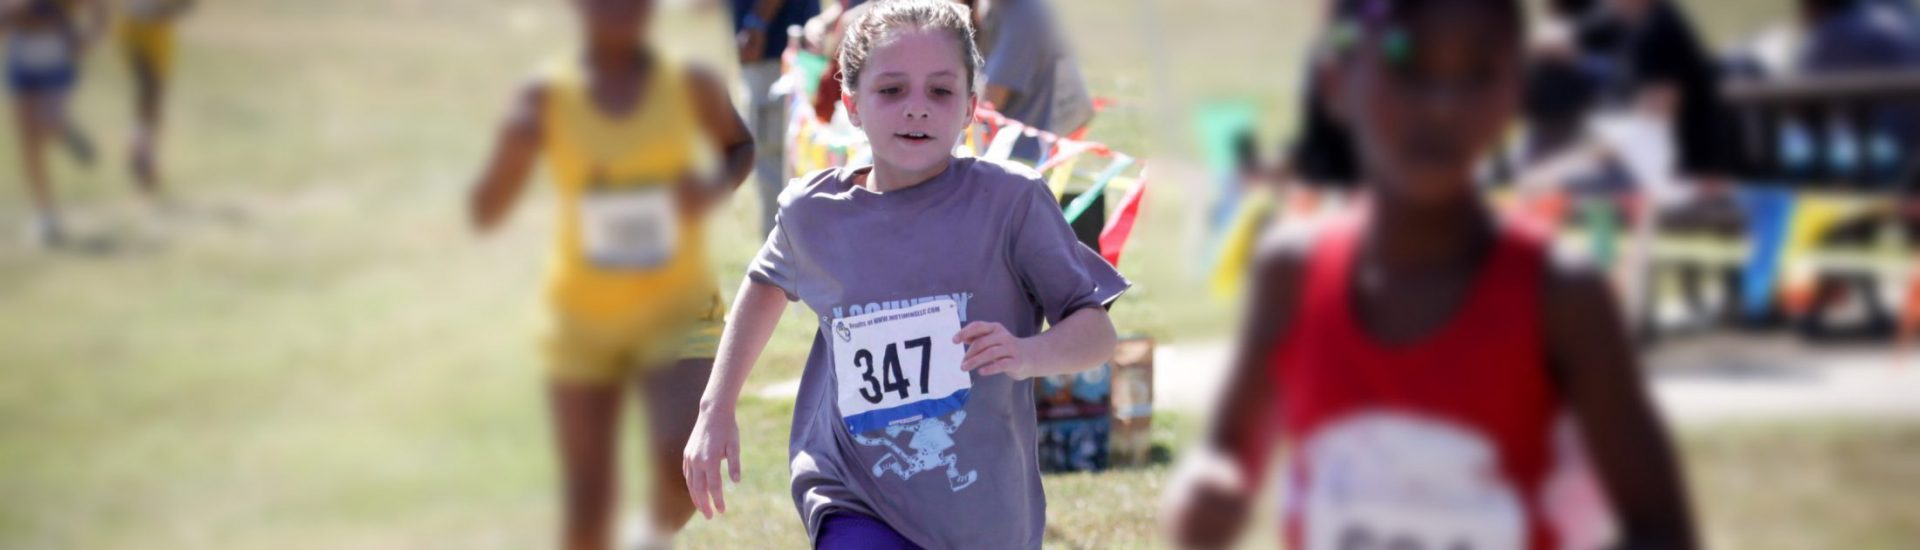 Daughter of DC widow blog writer Marjorie Brimley runs in cross country race